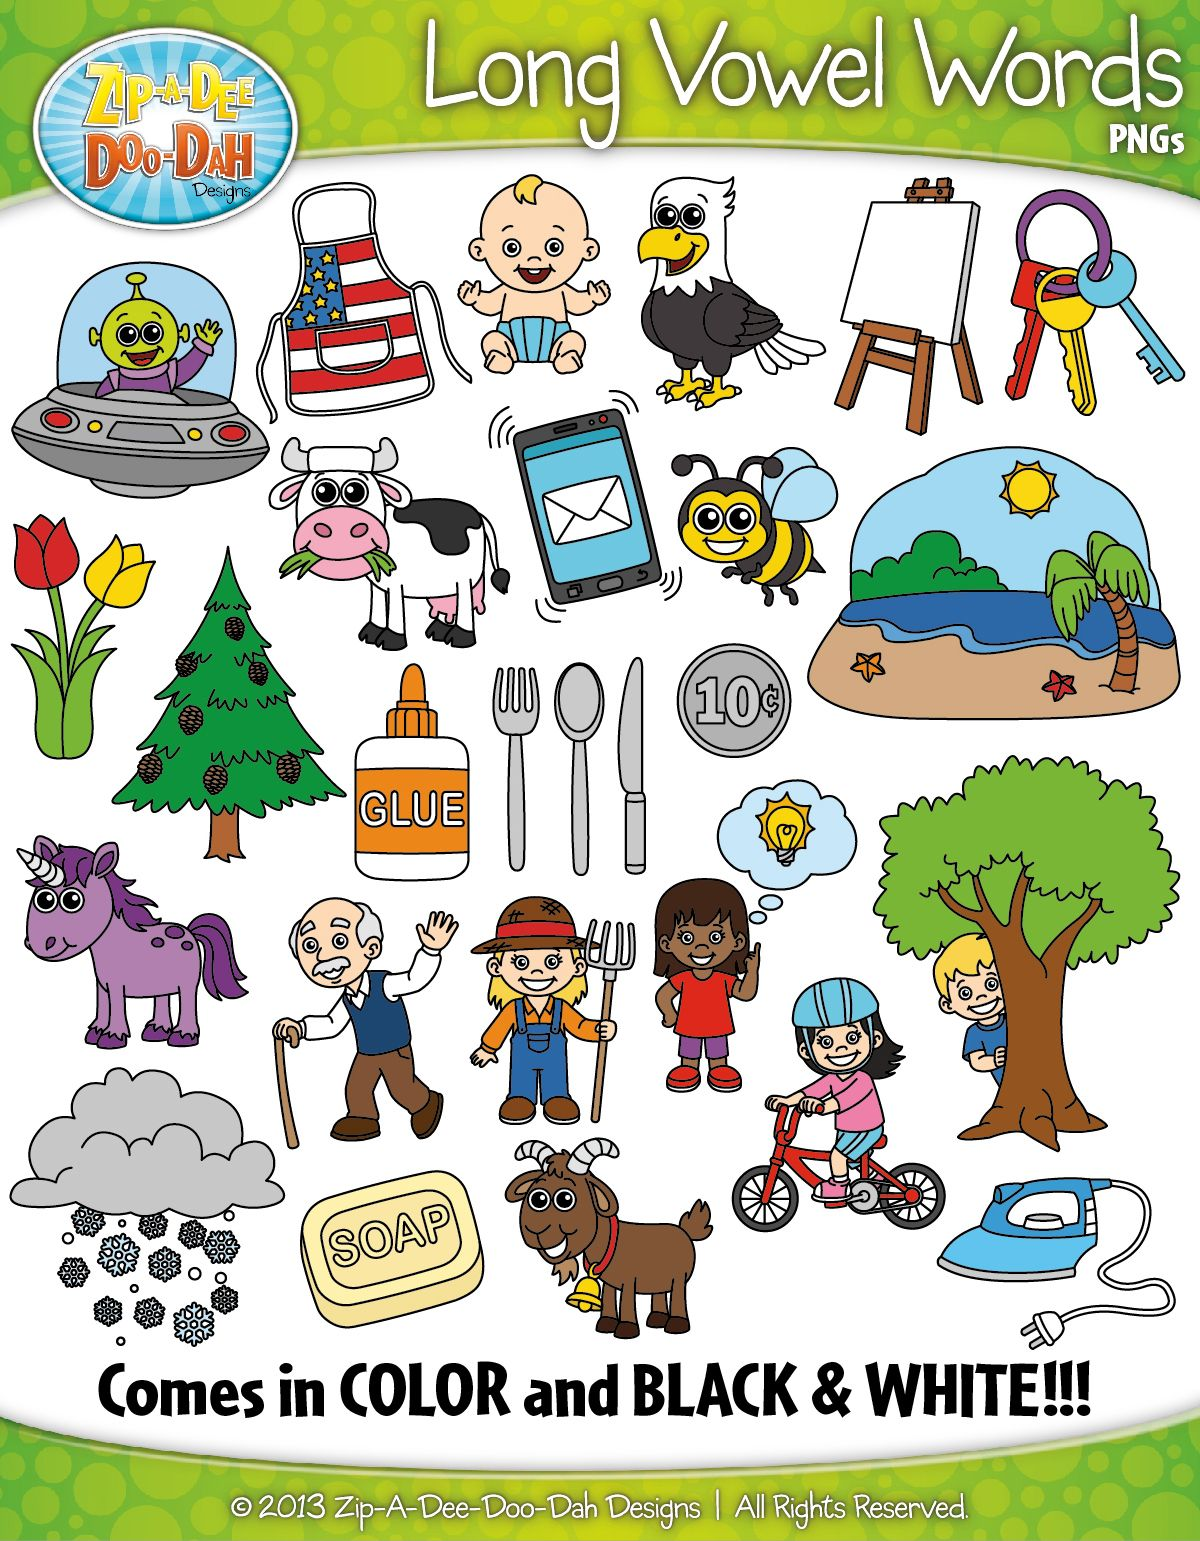 Long Vowel Sound Phonics Words Clipart Zip A Dee Doo Dah Designs Long Vowel Sounds Phonics Words Phonics